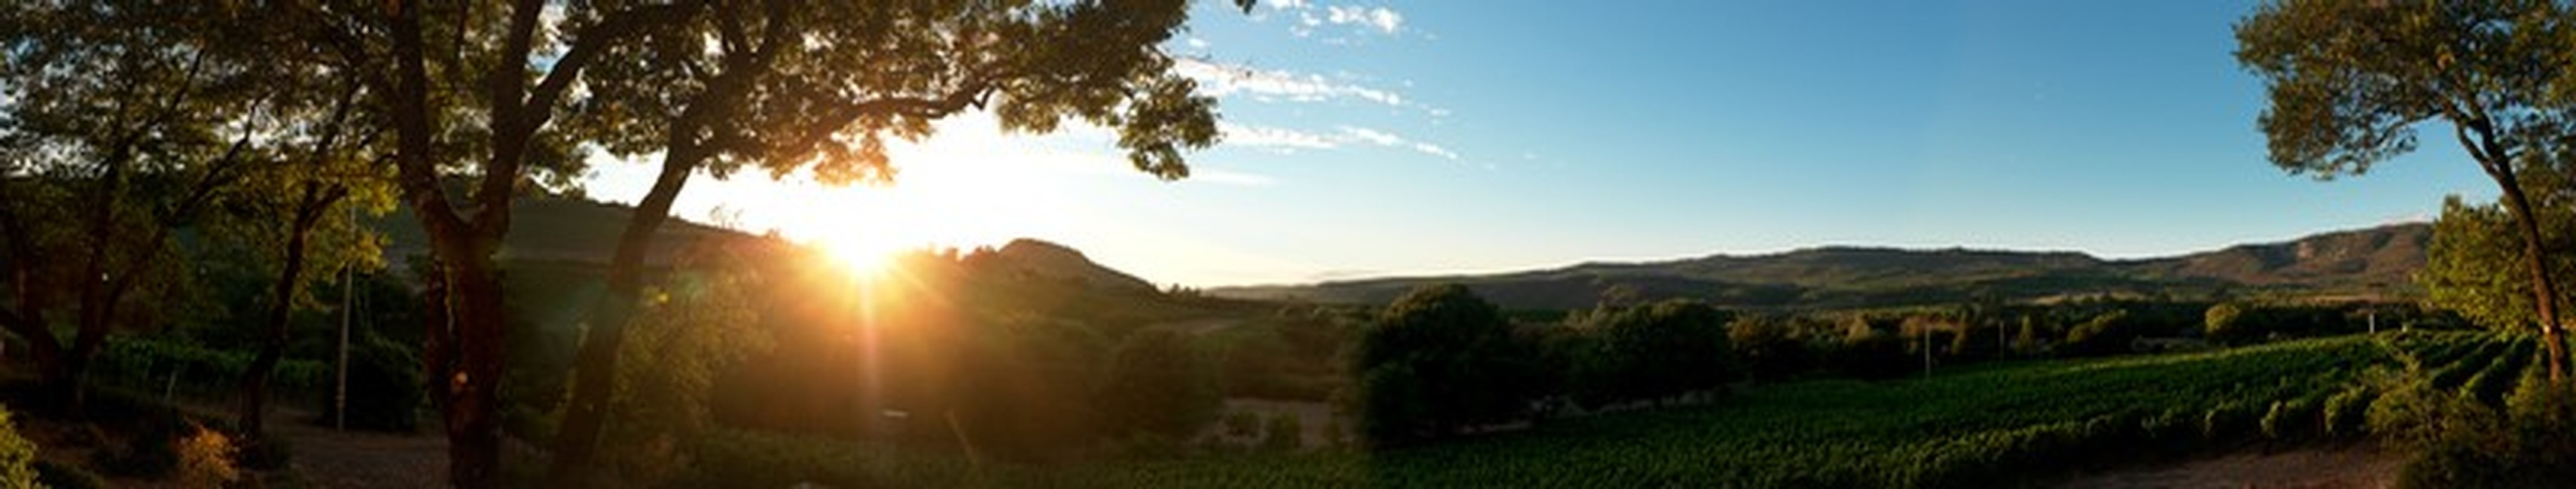 A panoramic view of our beautiful property on a clear day with blue skies as the sun sets in the background..